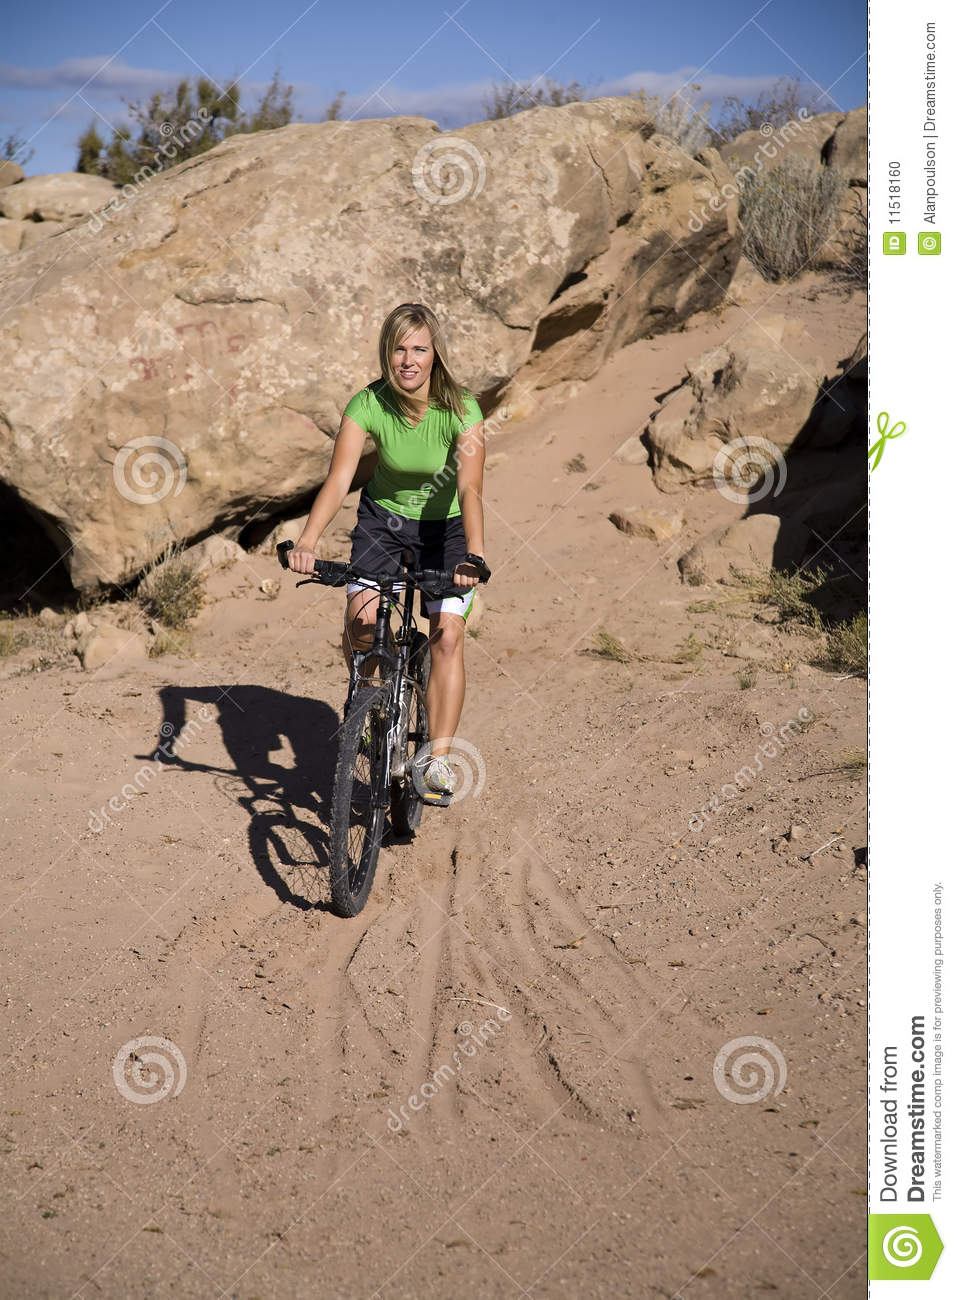 Woman riding bike in sand